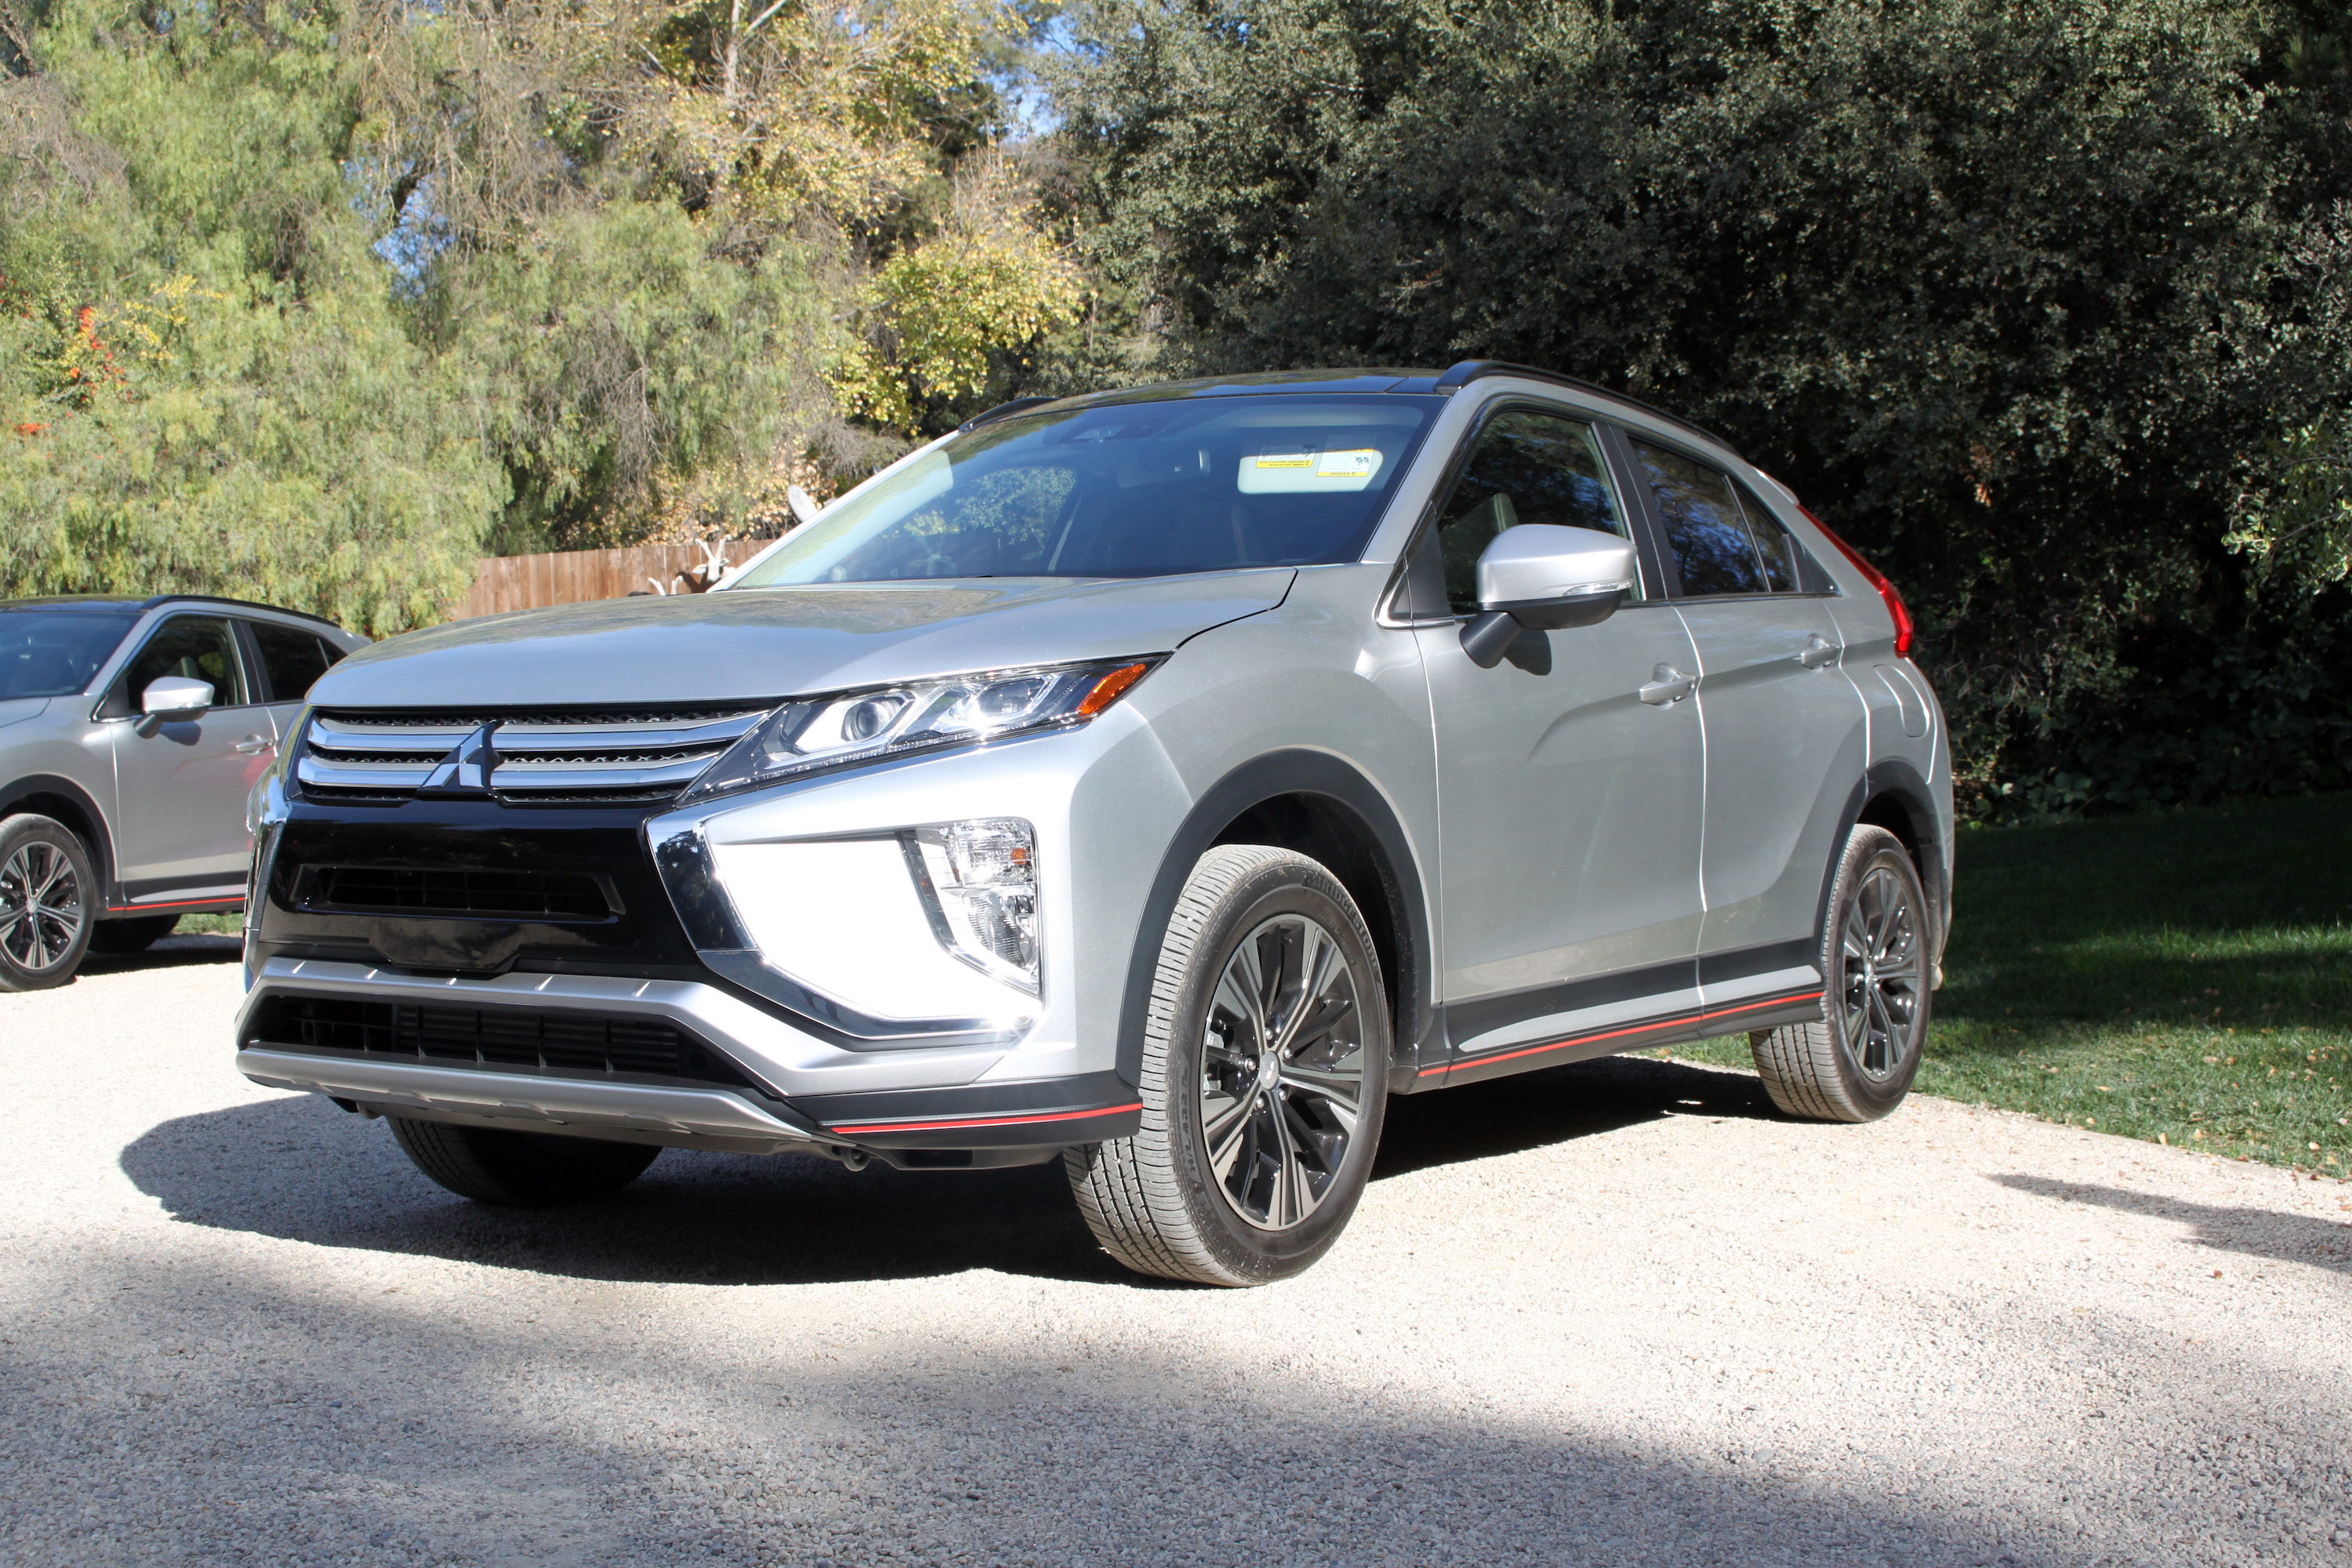 Mercedes Smart Car >> 2018 Mitsubishi Eclipse Cross First Drive and Review - AutoGuide.com